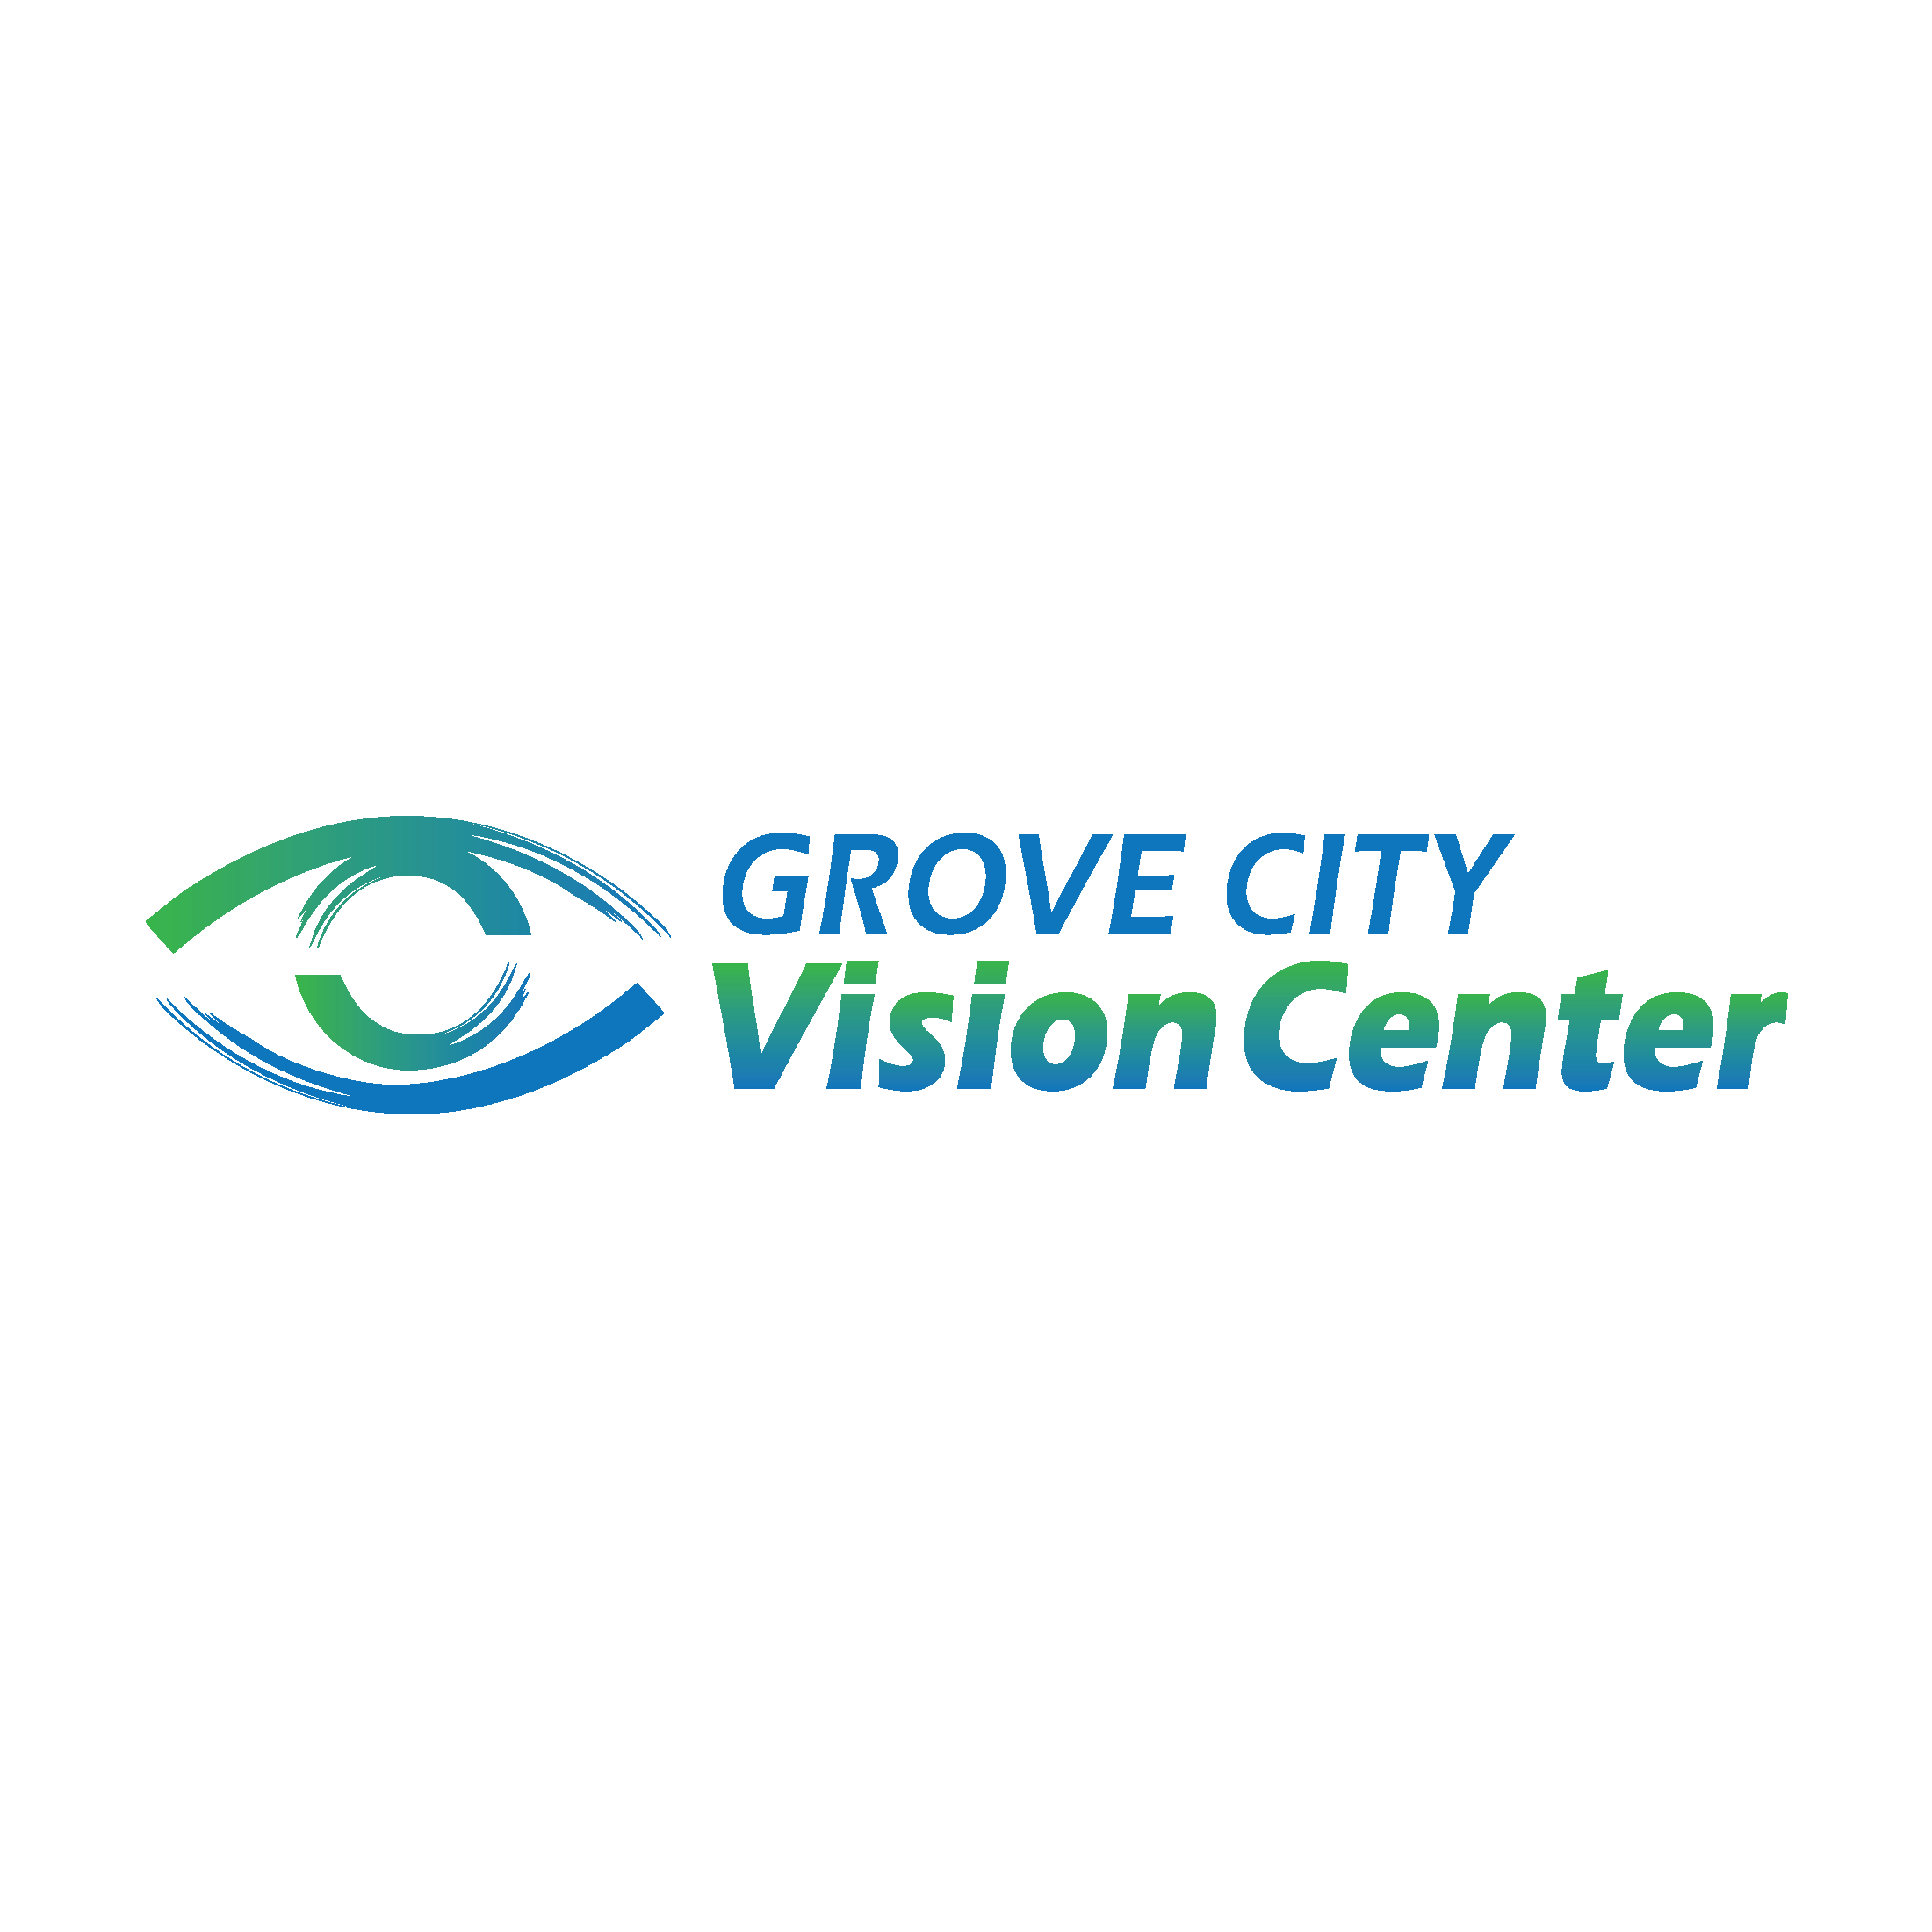 Grove City Vision Center